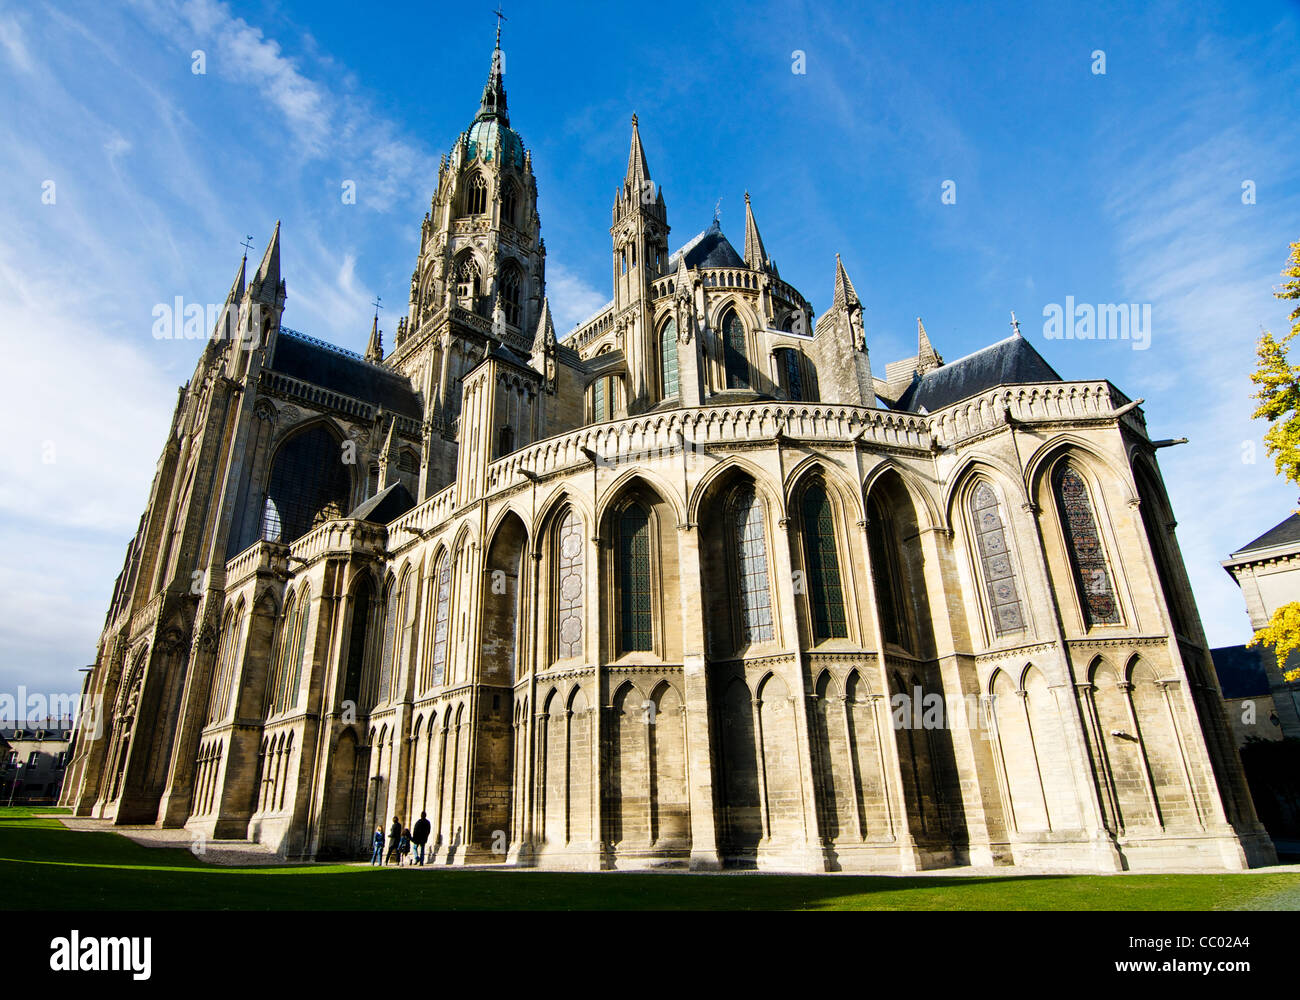 Medieval stone Bayeux Cathedral in Normandy, France. Consecrated 1077 by William, Duke of Normandy, William The - Stock Image